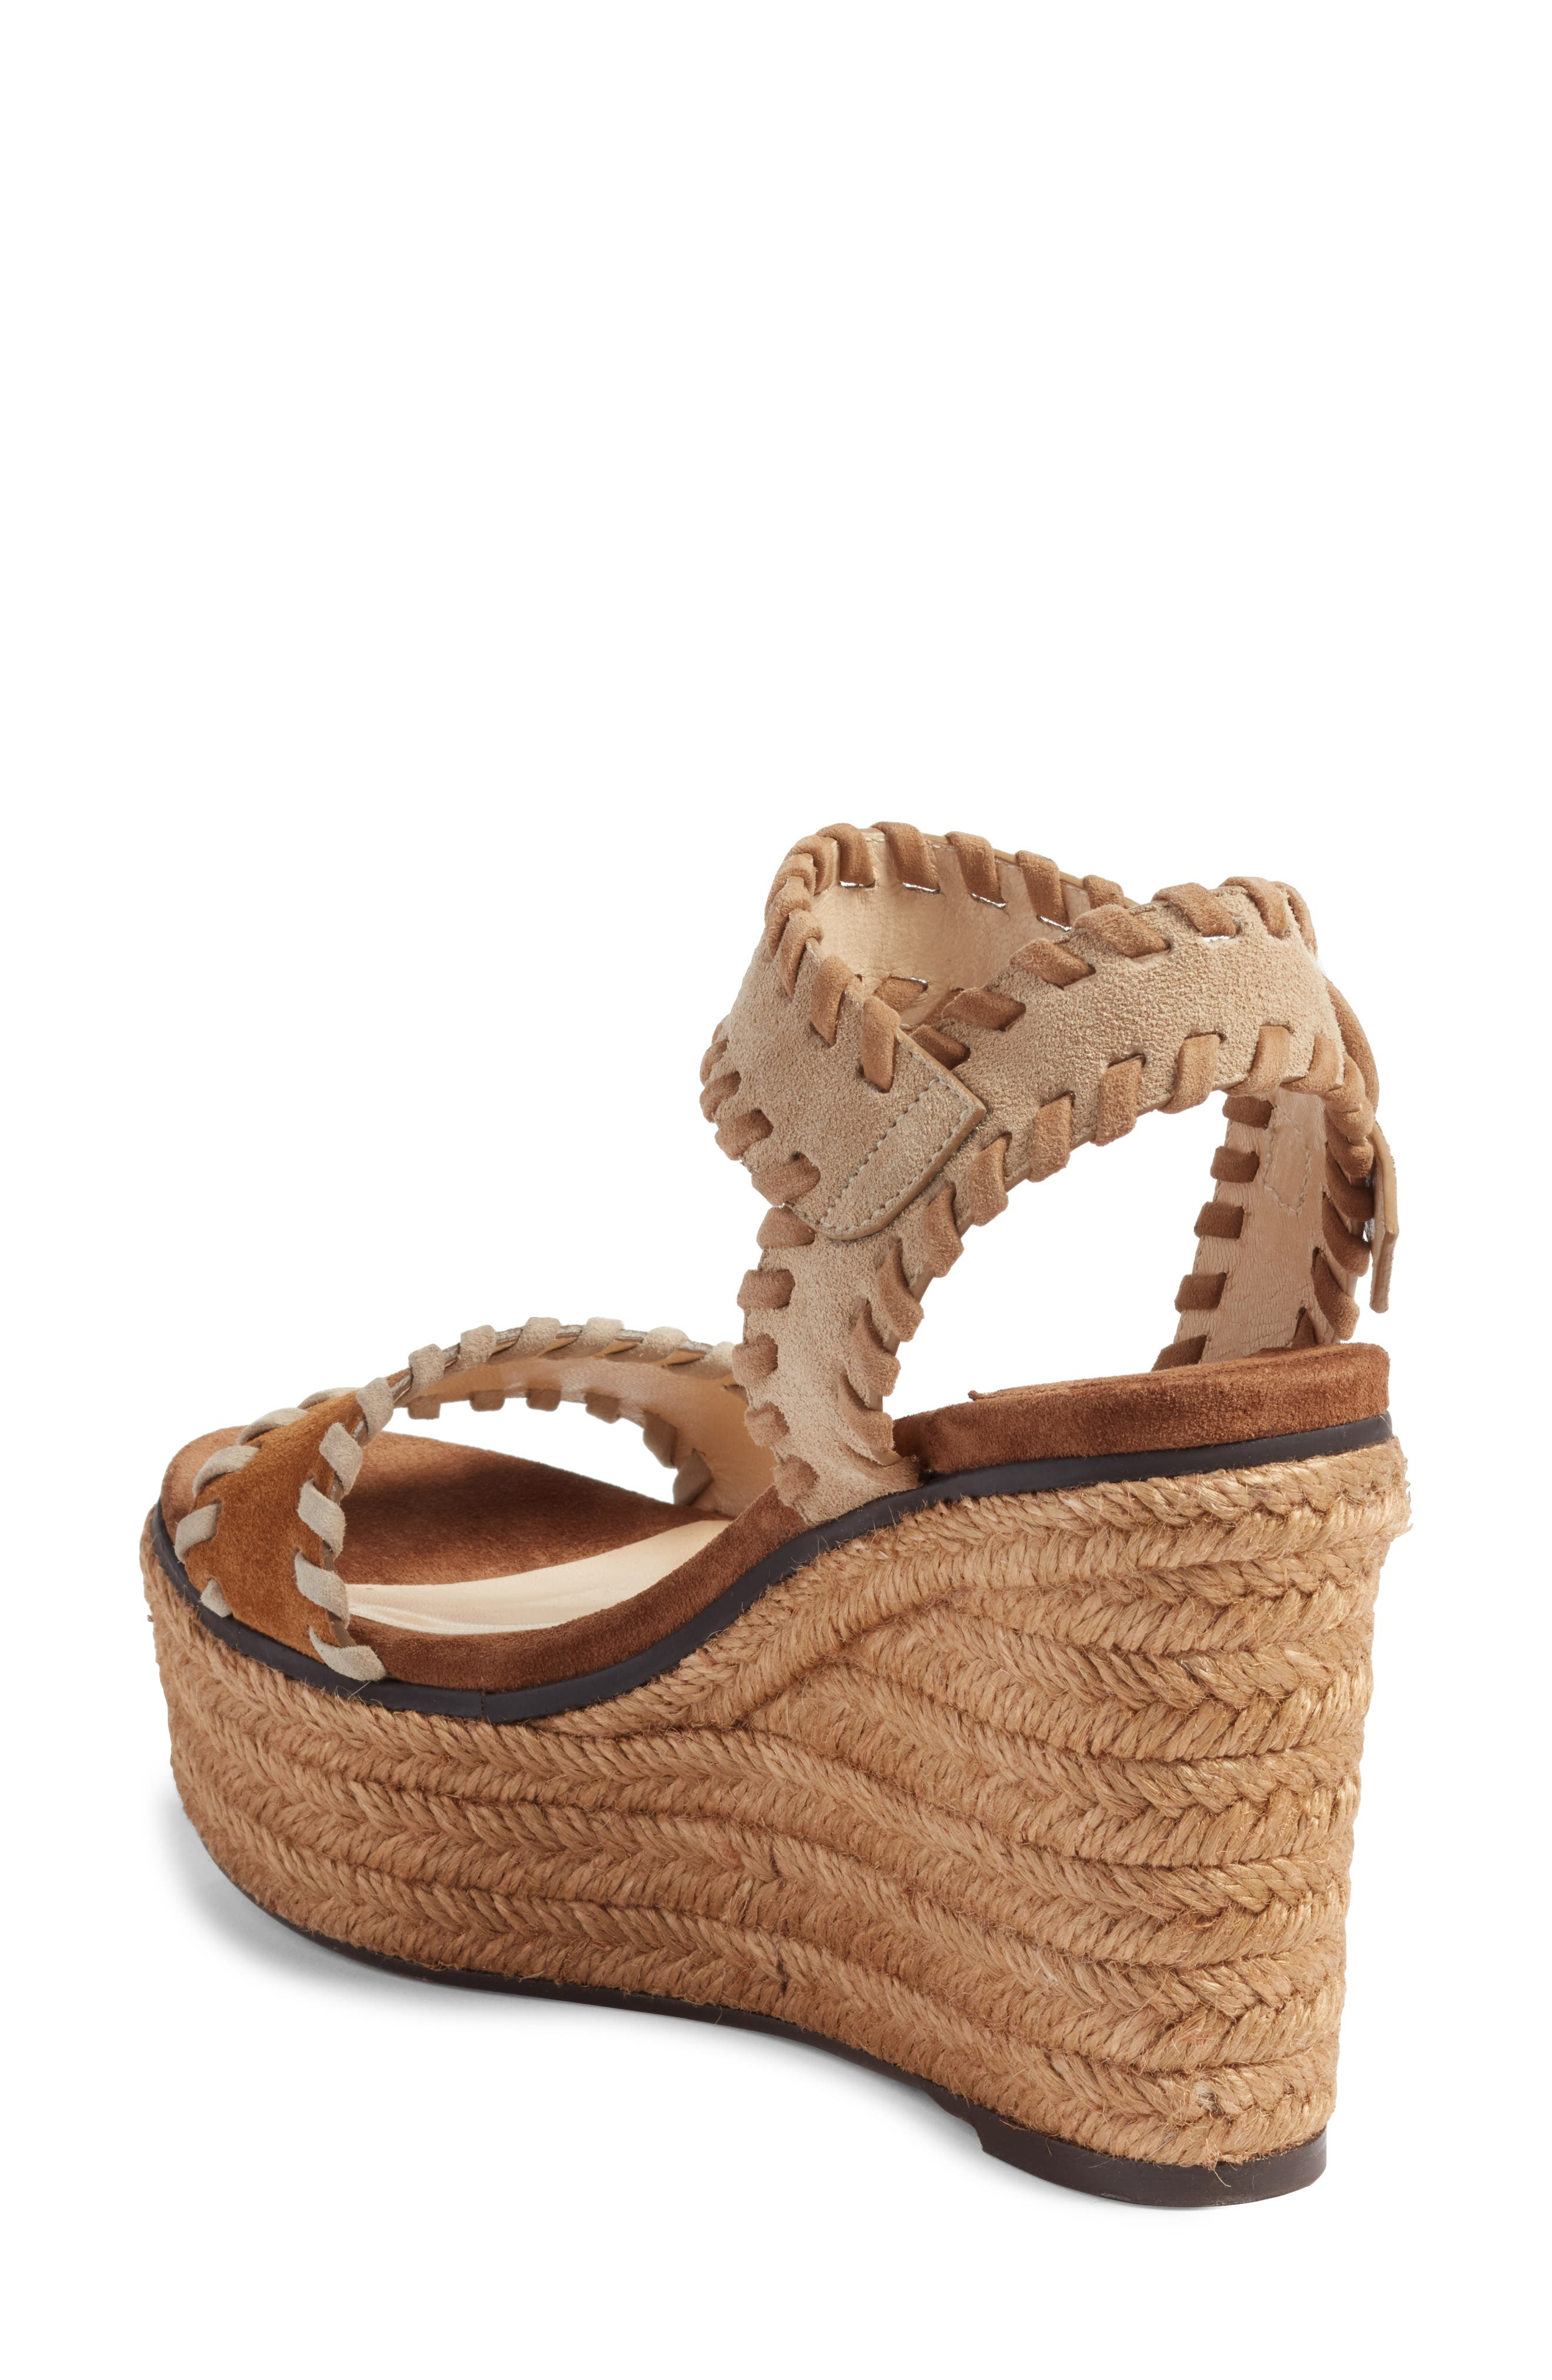 JIMMY CHOO, Abigail Whipstitch Wedge, Alternate thumbnail 2, color, NATURAL/ BROWN